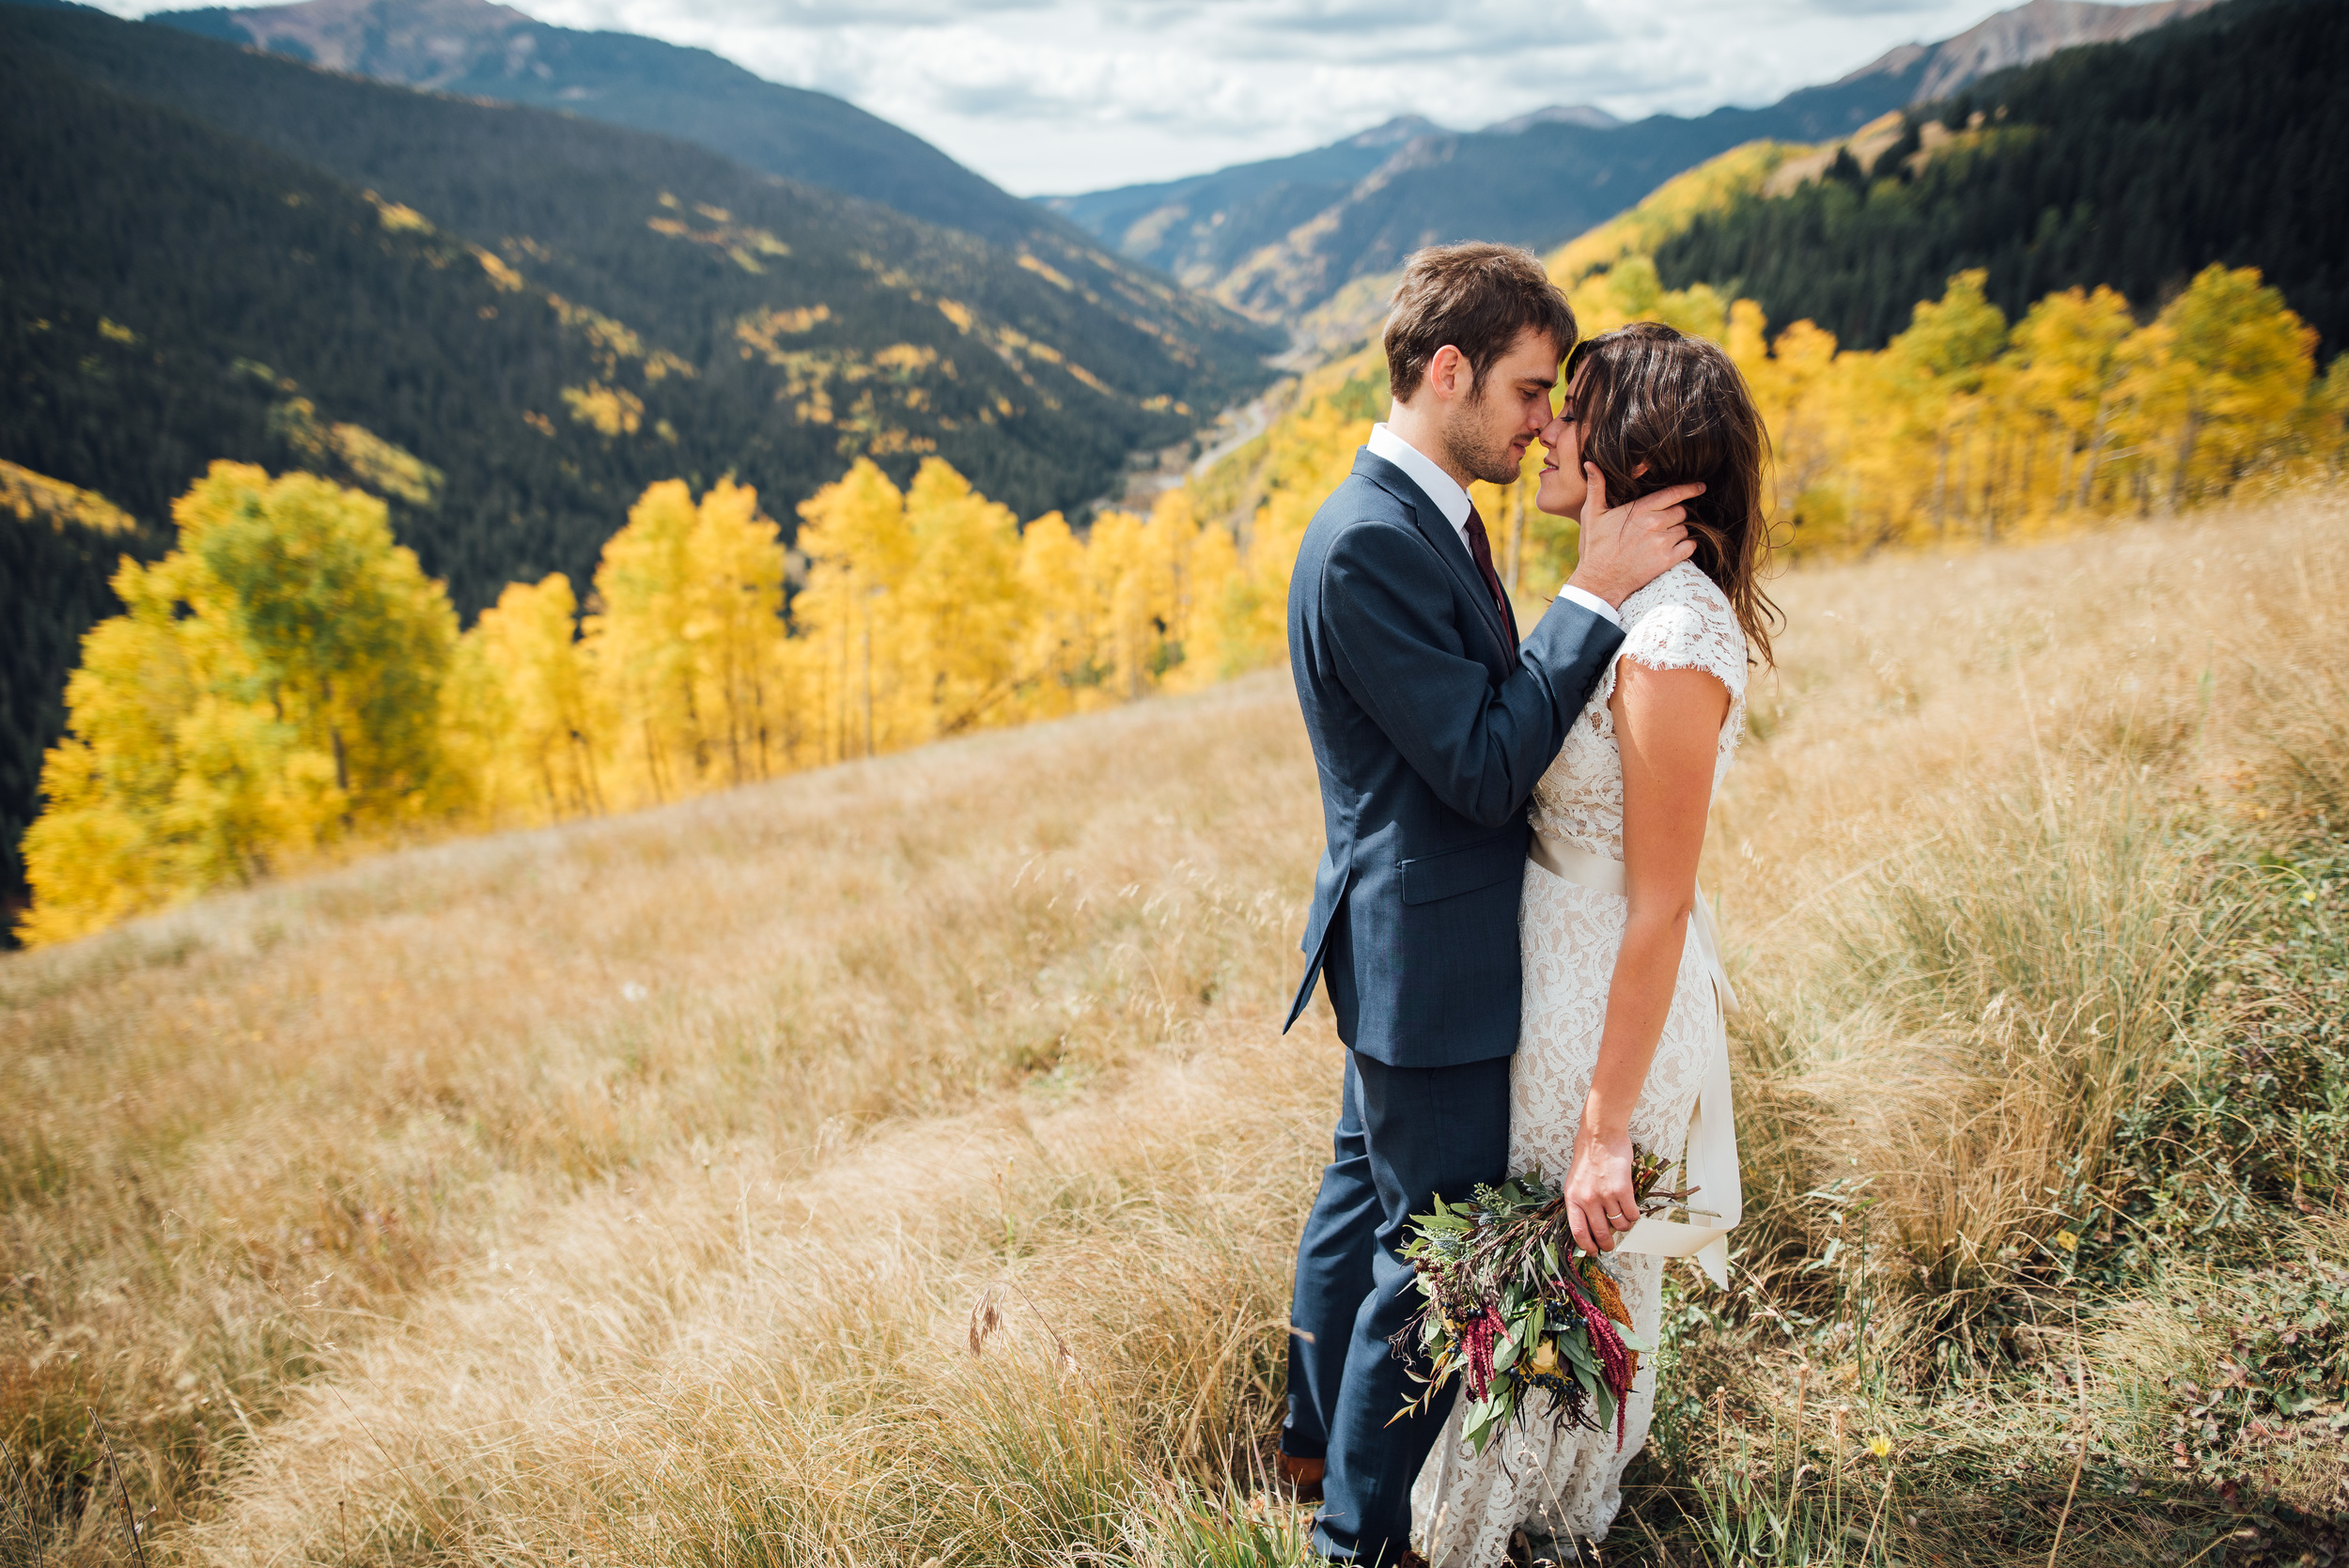 Thomas x Lauren | Colorado elopement |